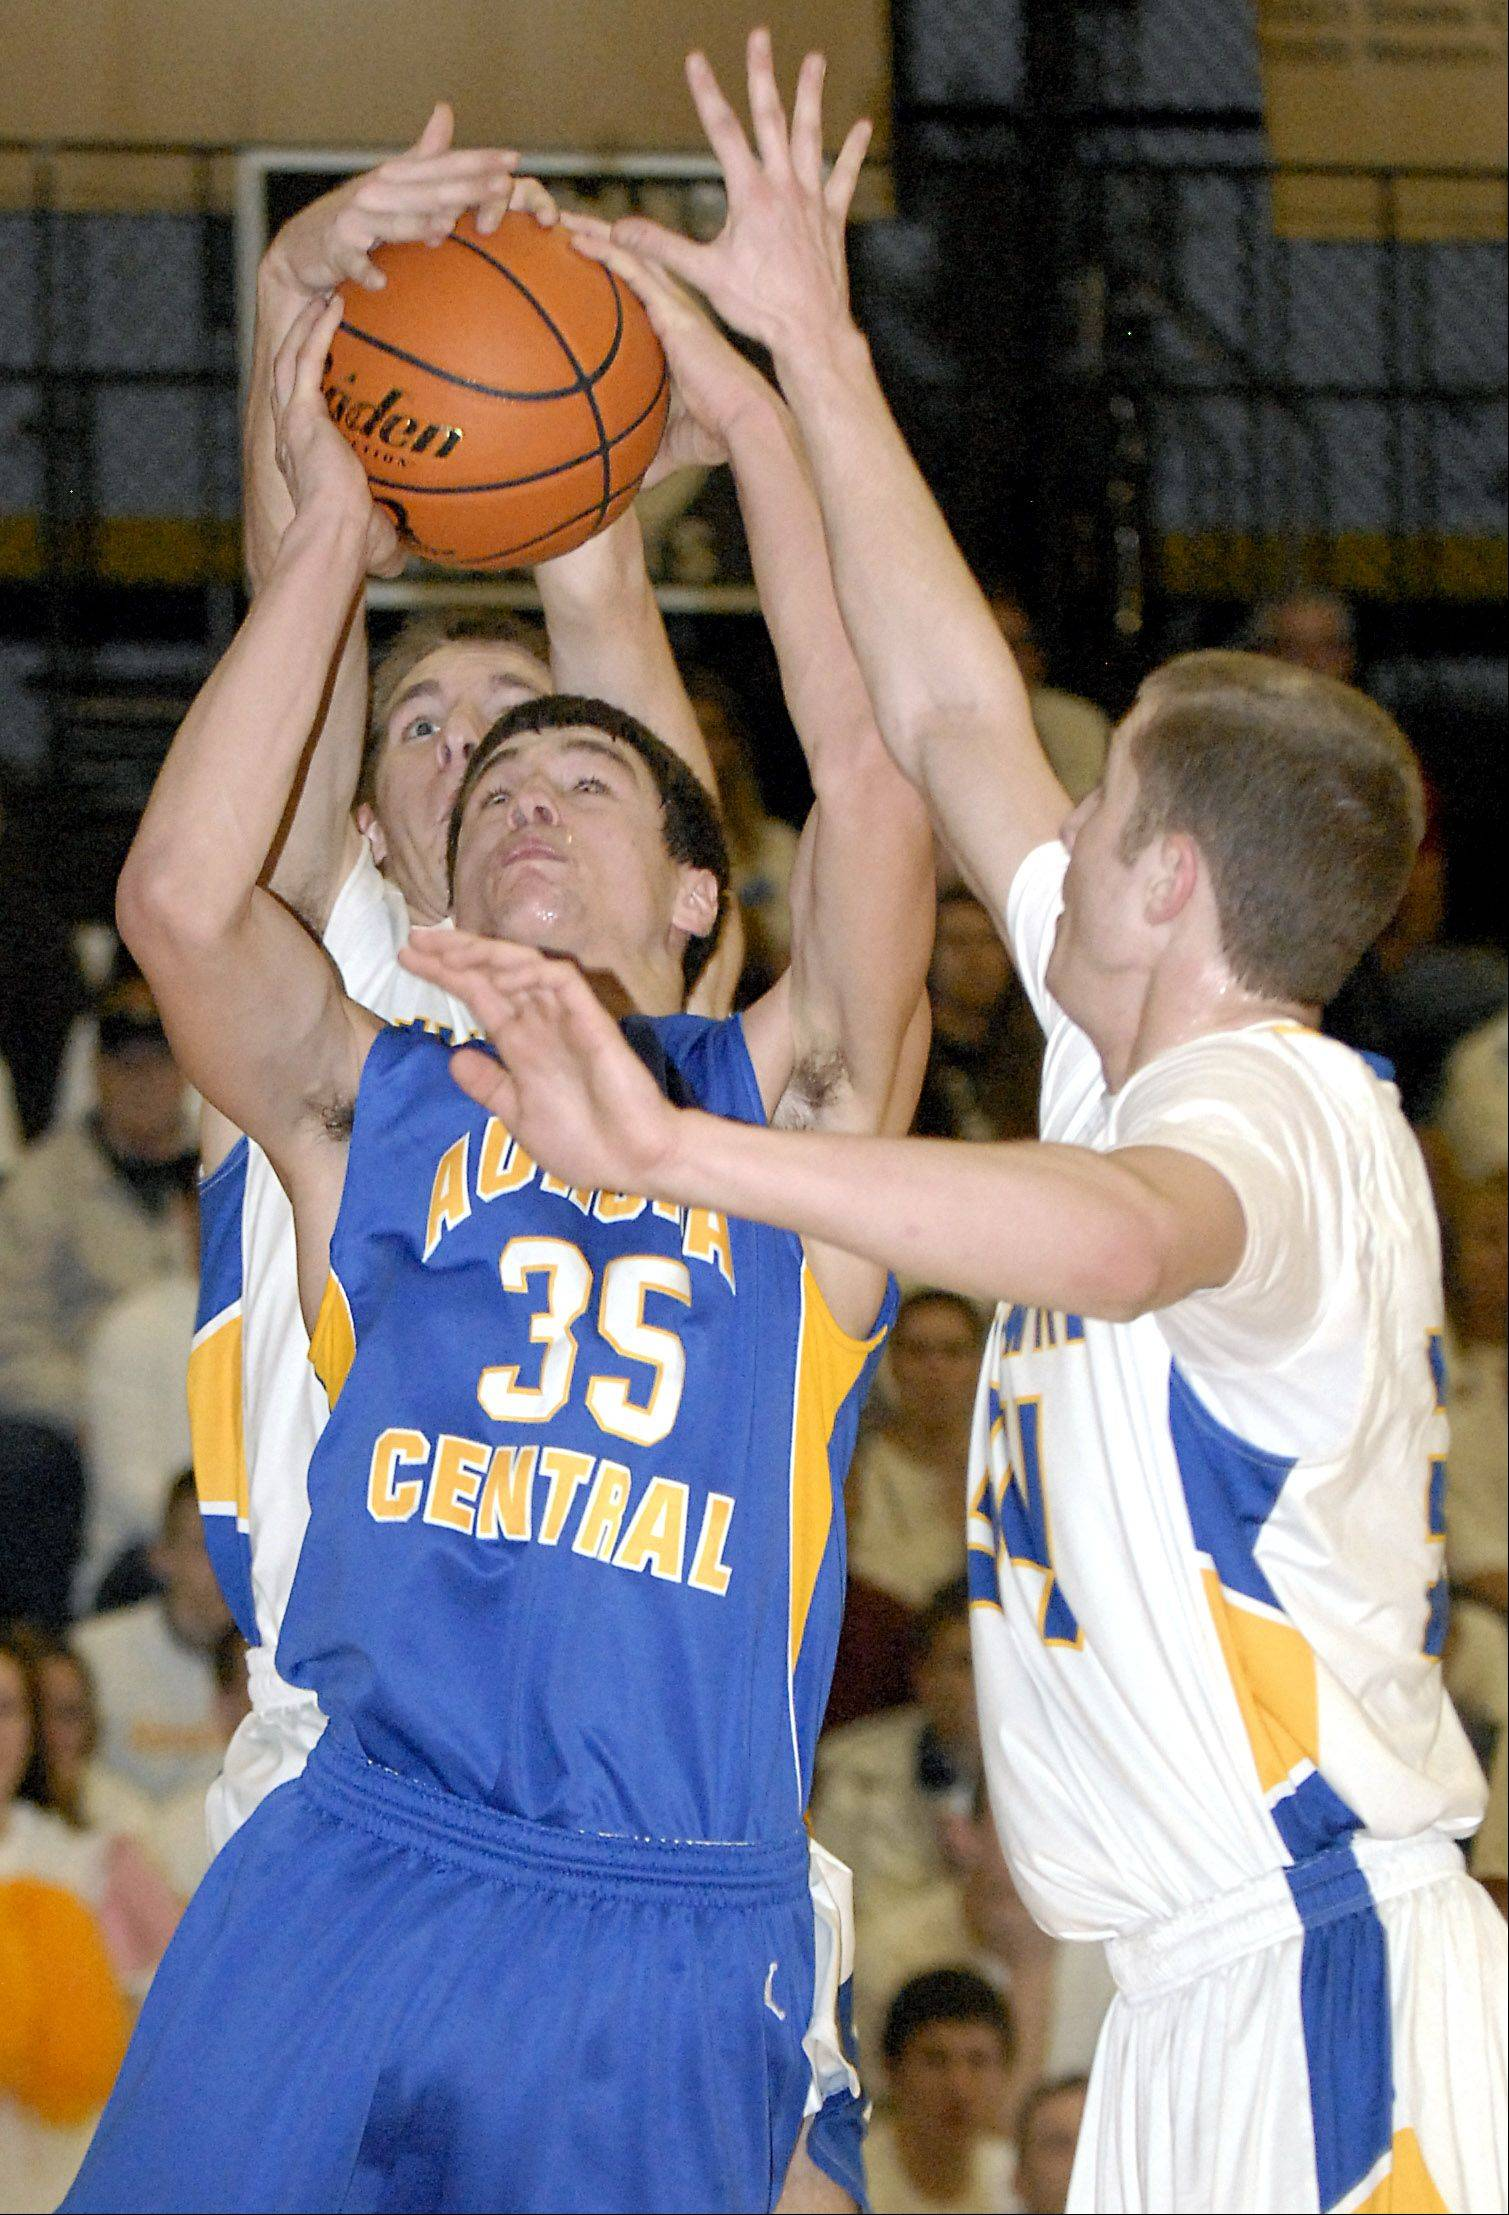 Aurora Central Catholic's Phil Schuetz attempts a shot while swarmed by Johnsburg's Mike Ward and TJ Sigmund in the first quarter .